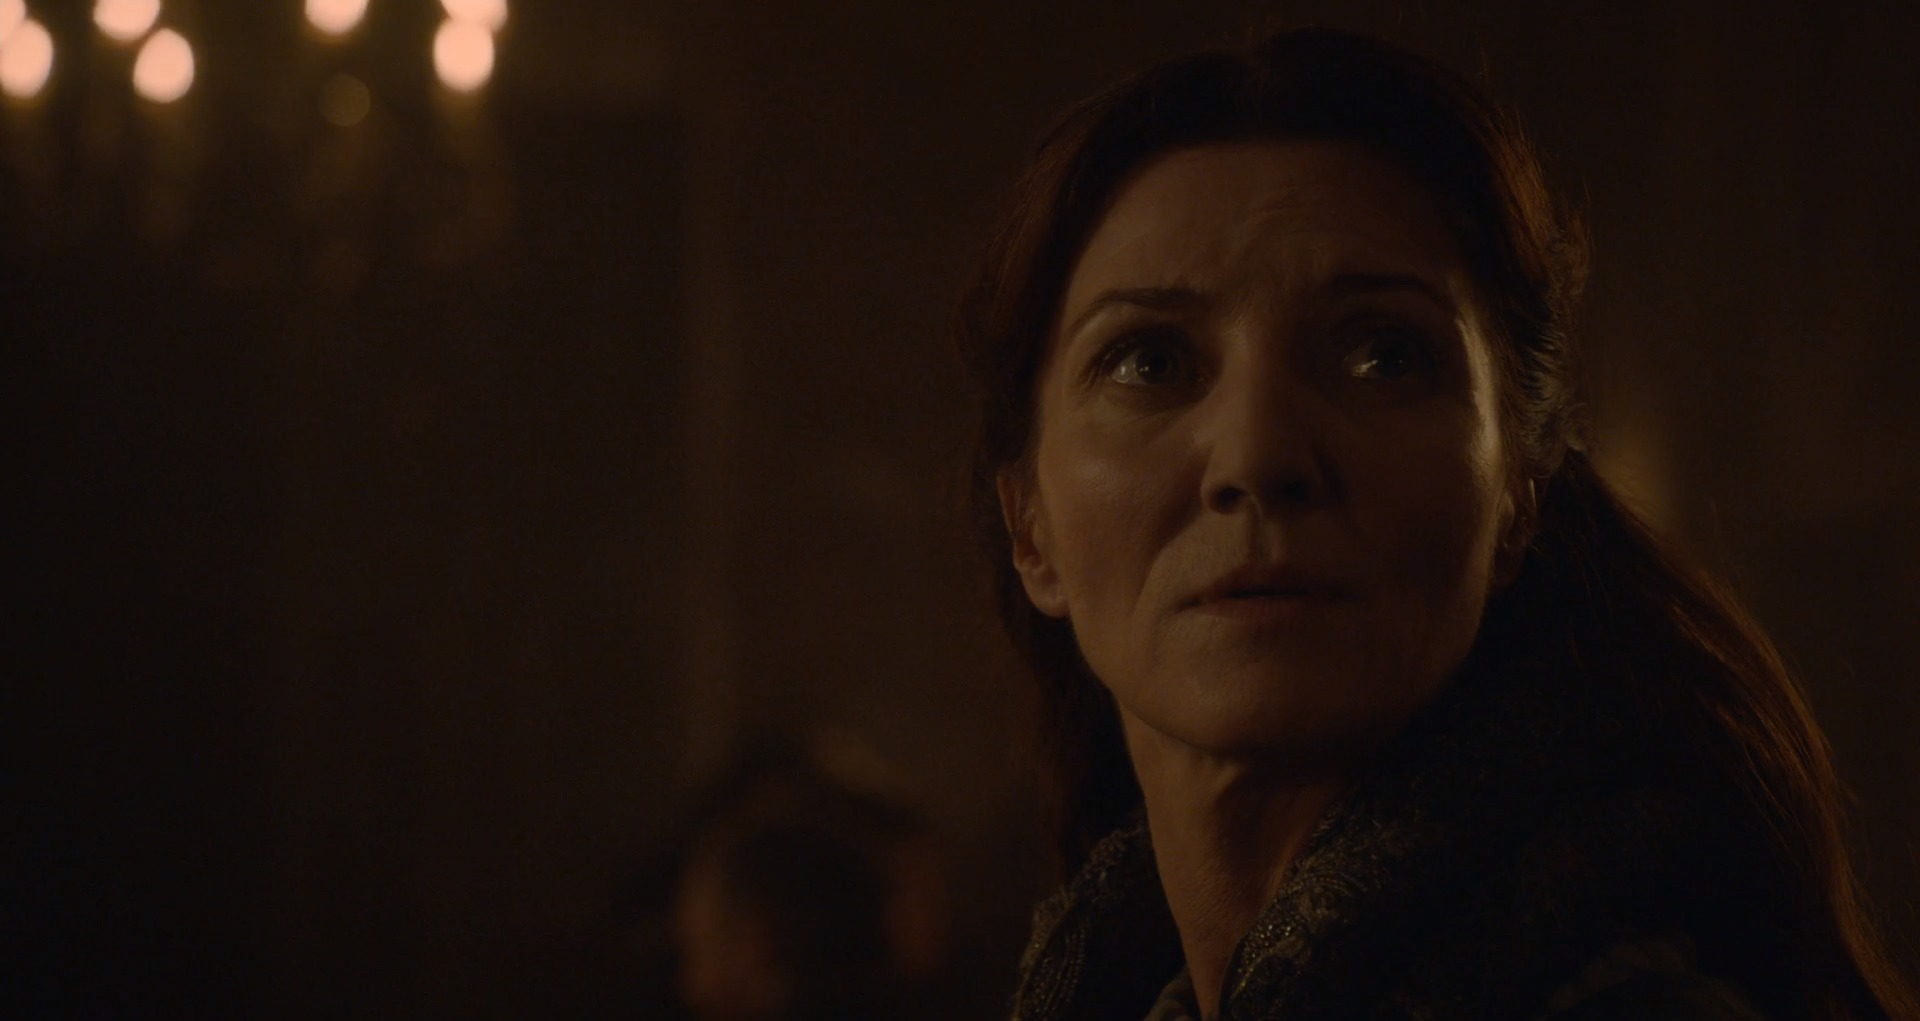 Catelyn Stark at the Red Wedding from Game of Thrones